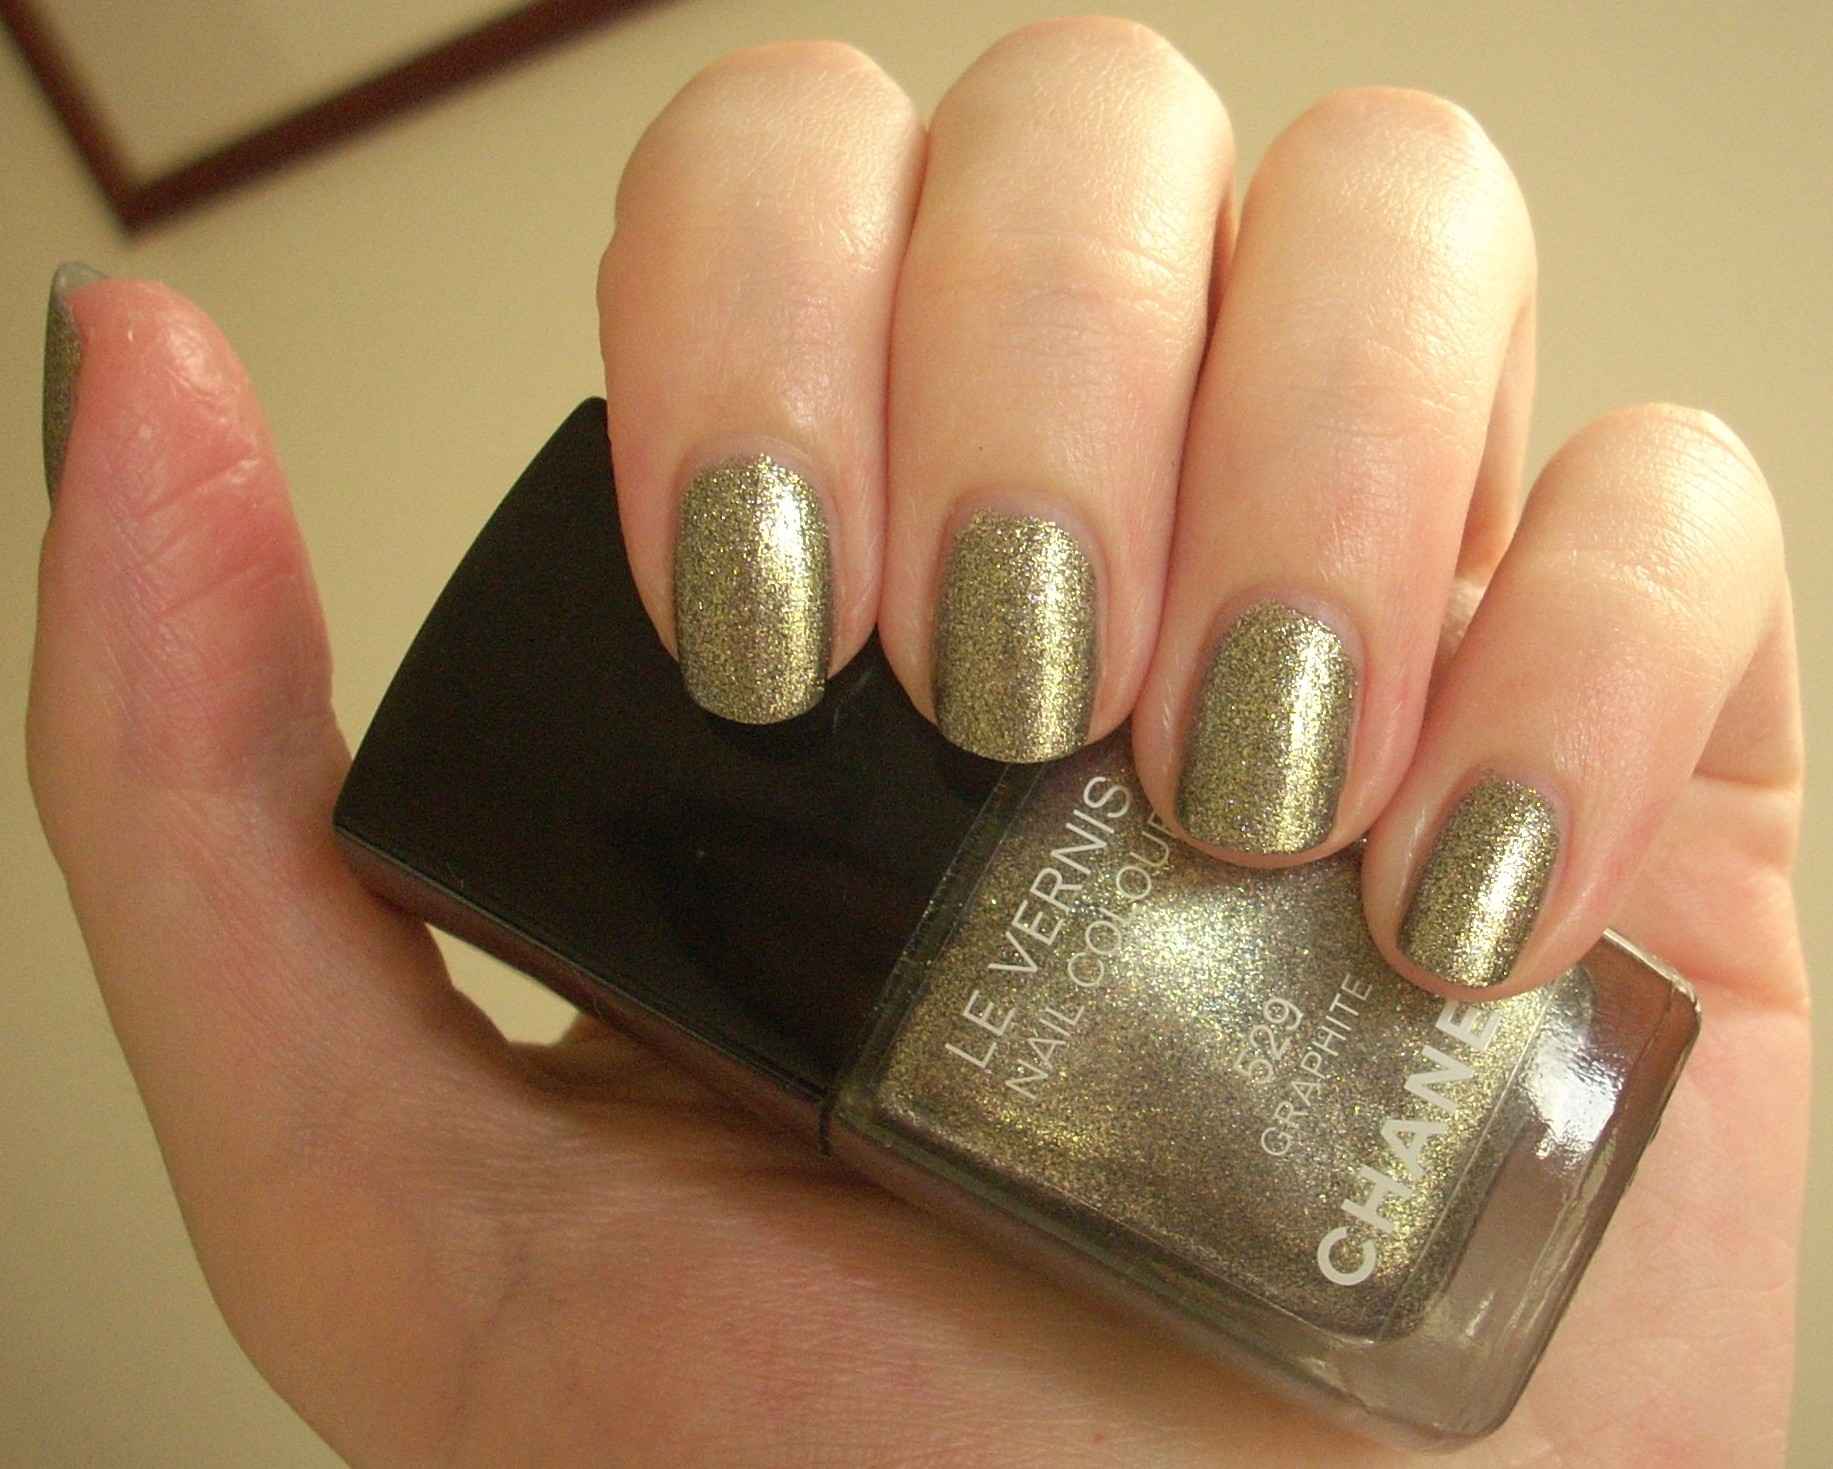 Best Glitter Nail Polishes Through The Looking Glass Page 2